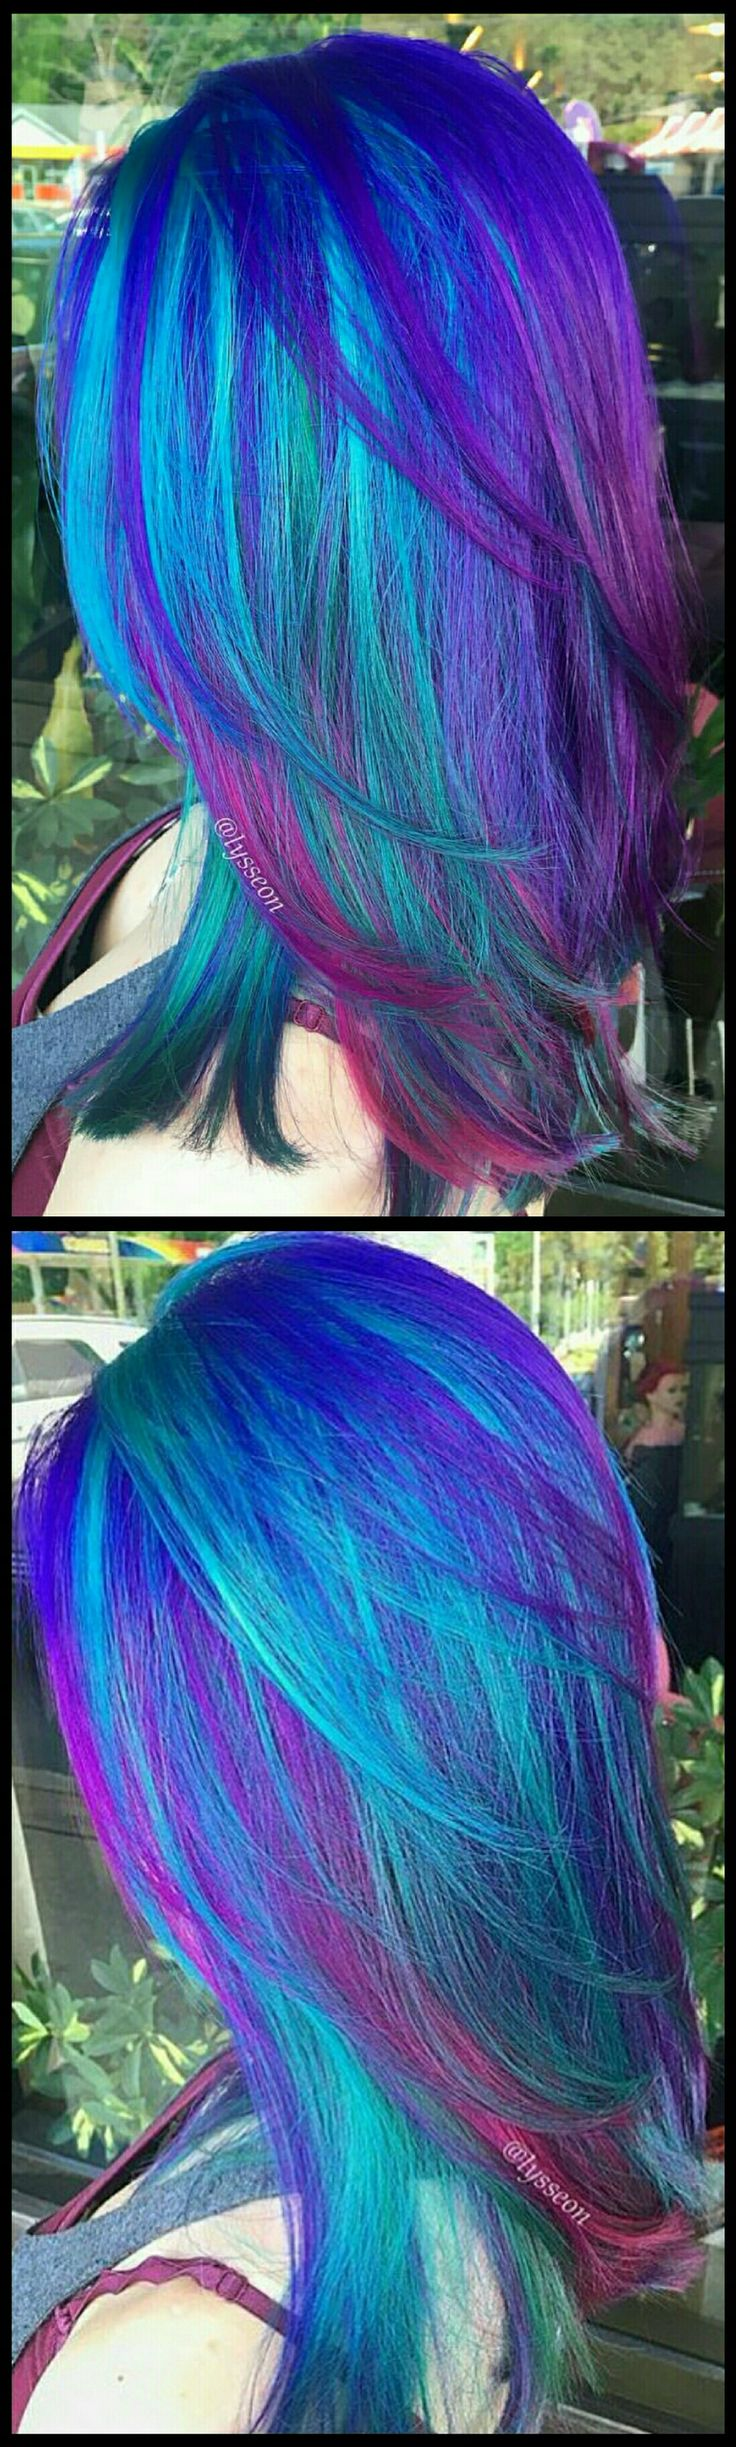 1558 best Colorful Hair images on Pinterest | Colourful ...